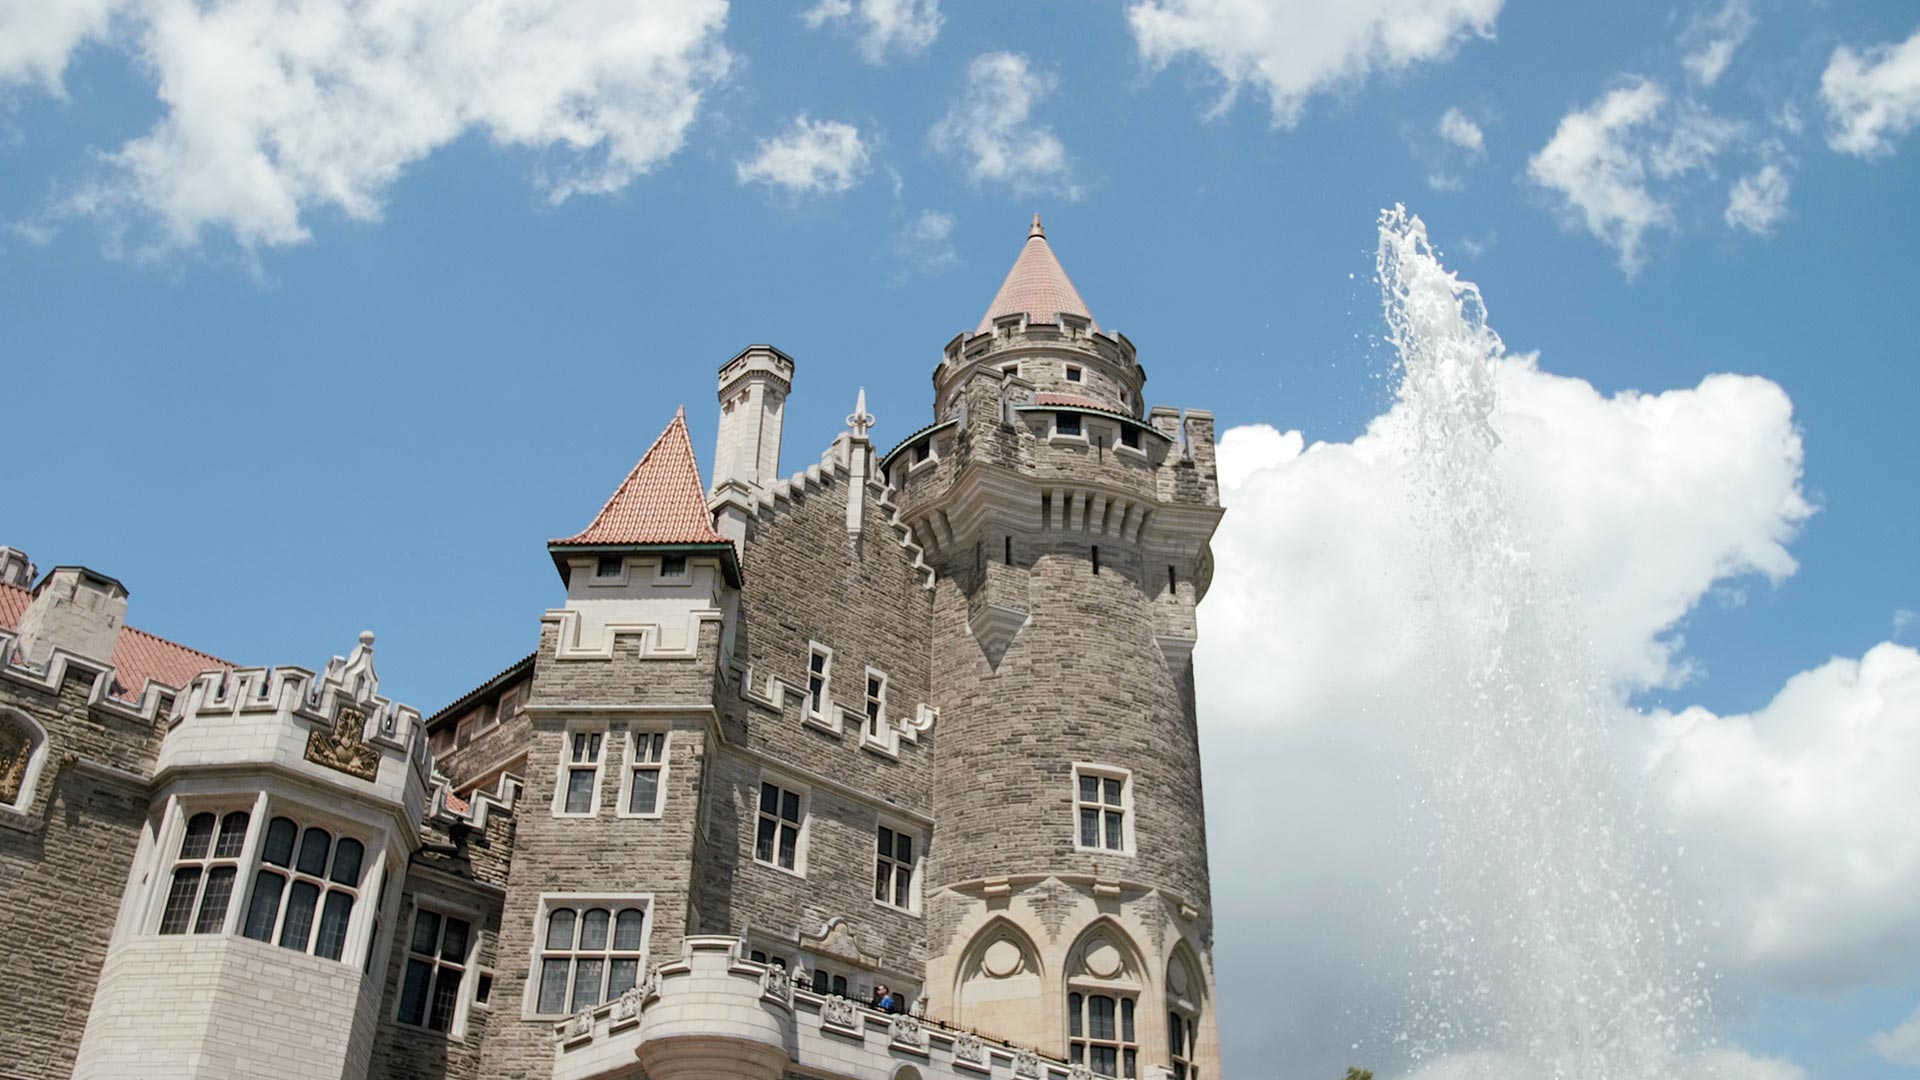 Looking up at the turrets of Casa Loma in Toronto